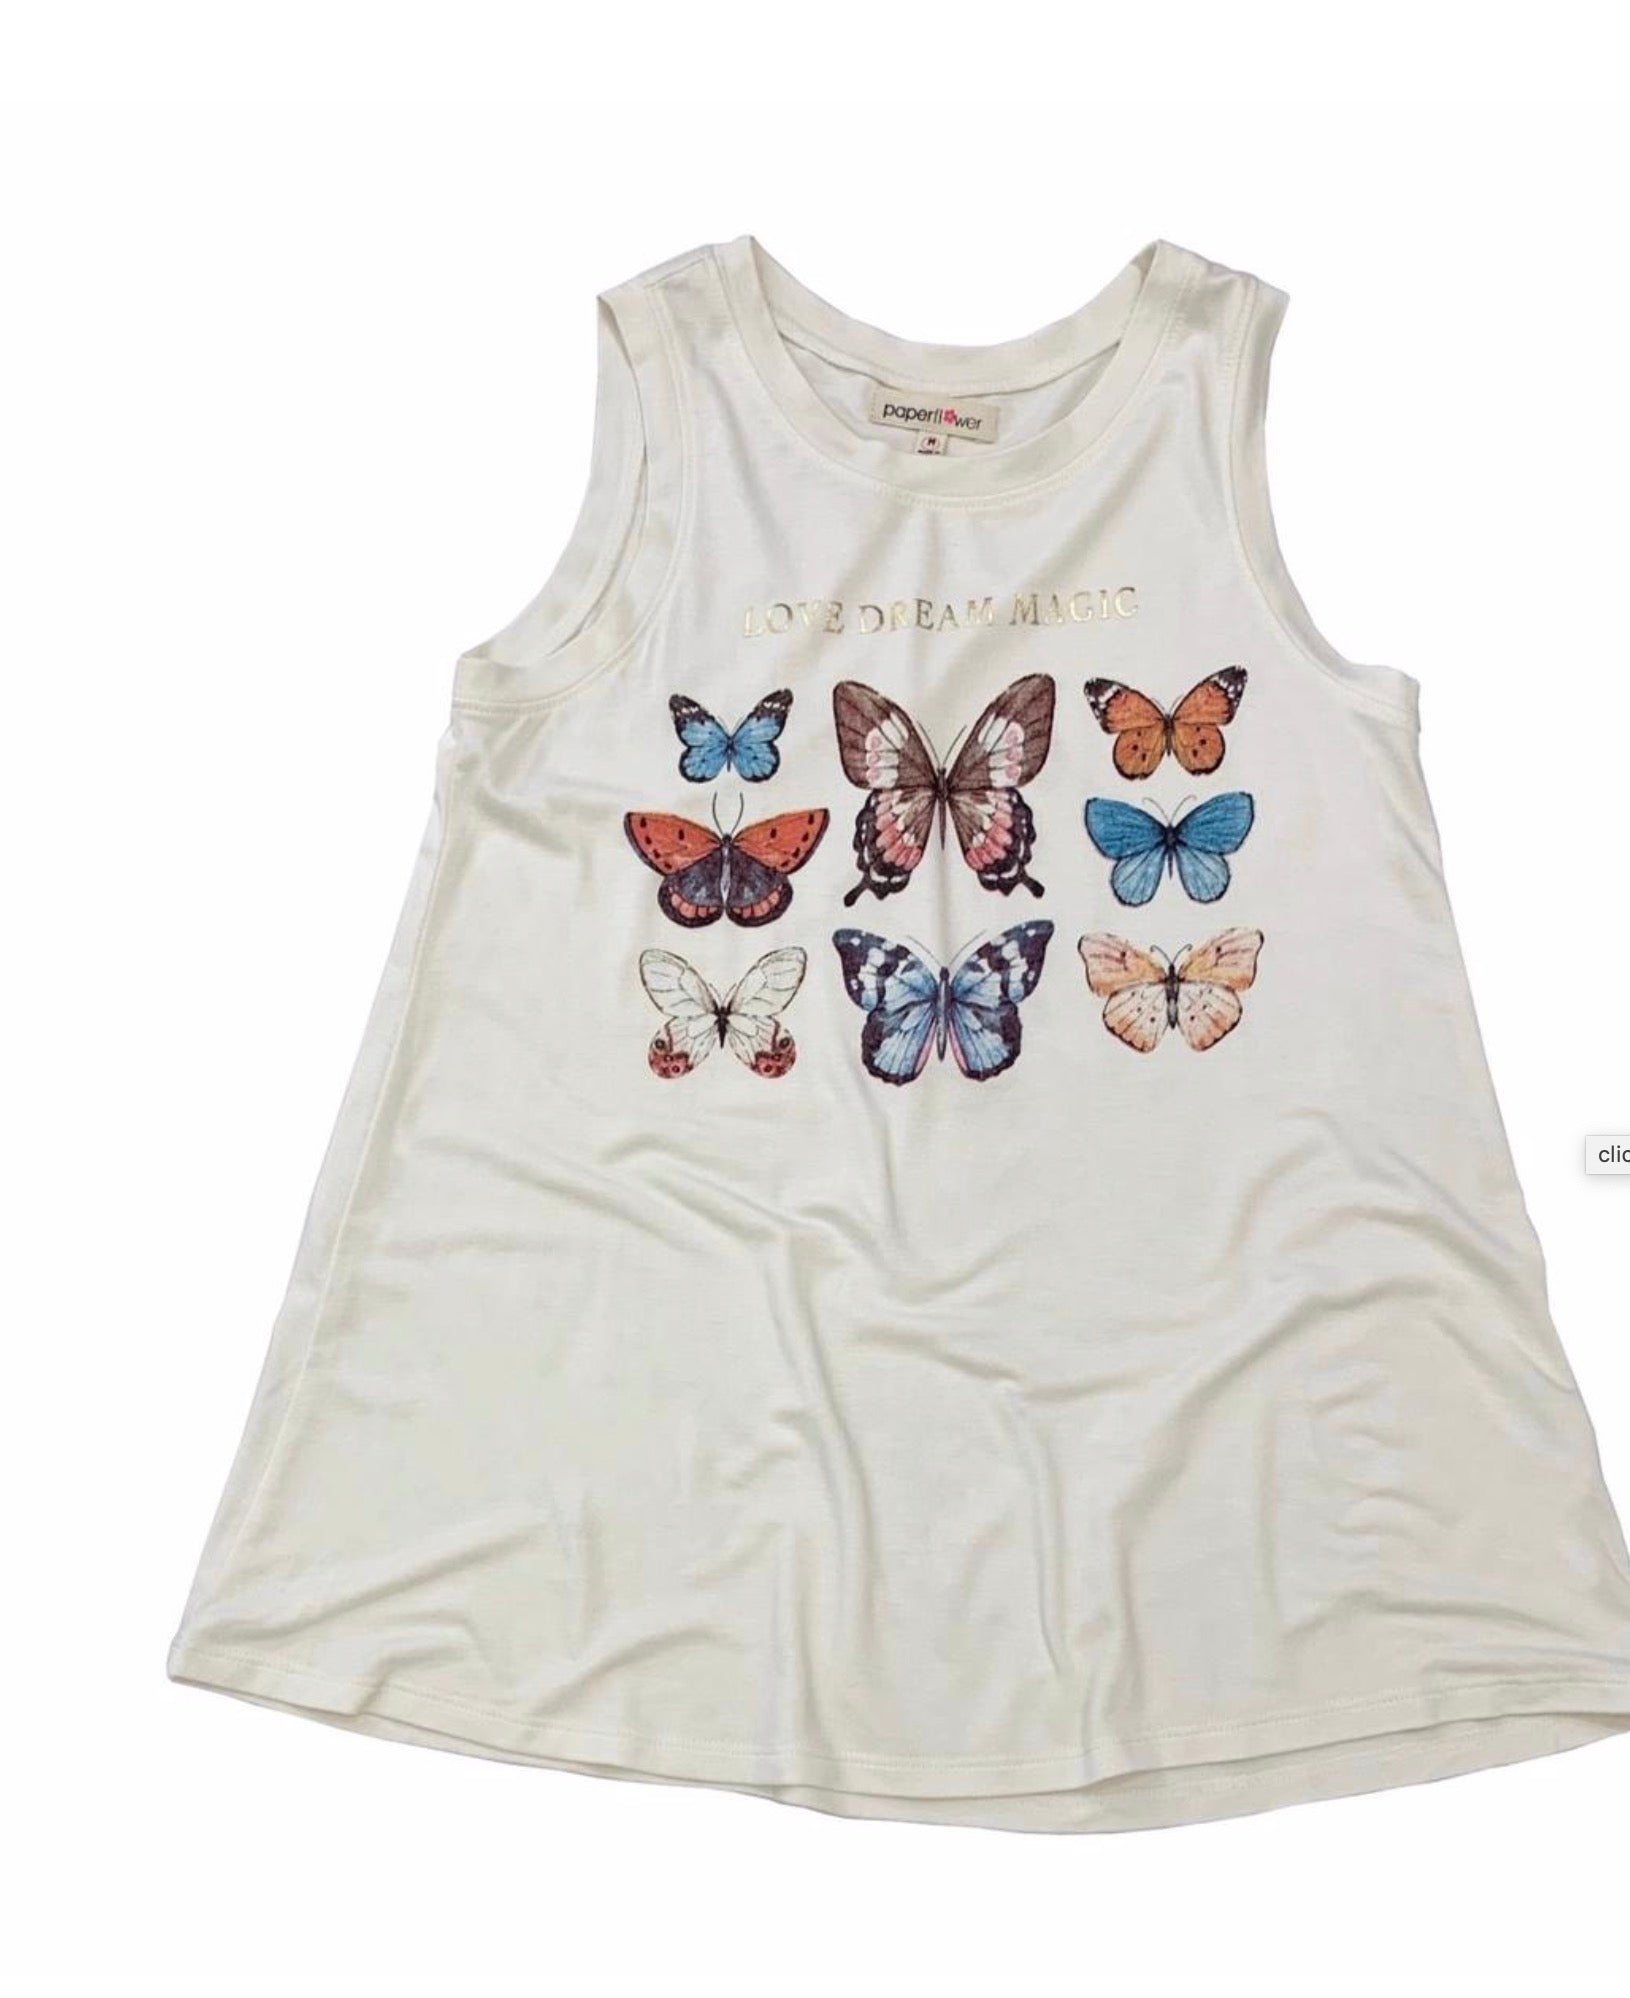 Love Dream Magic Butterfly Tank